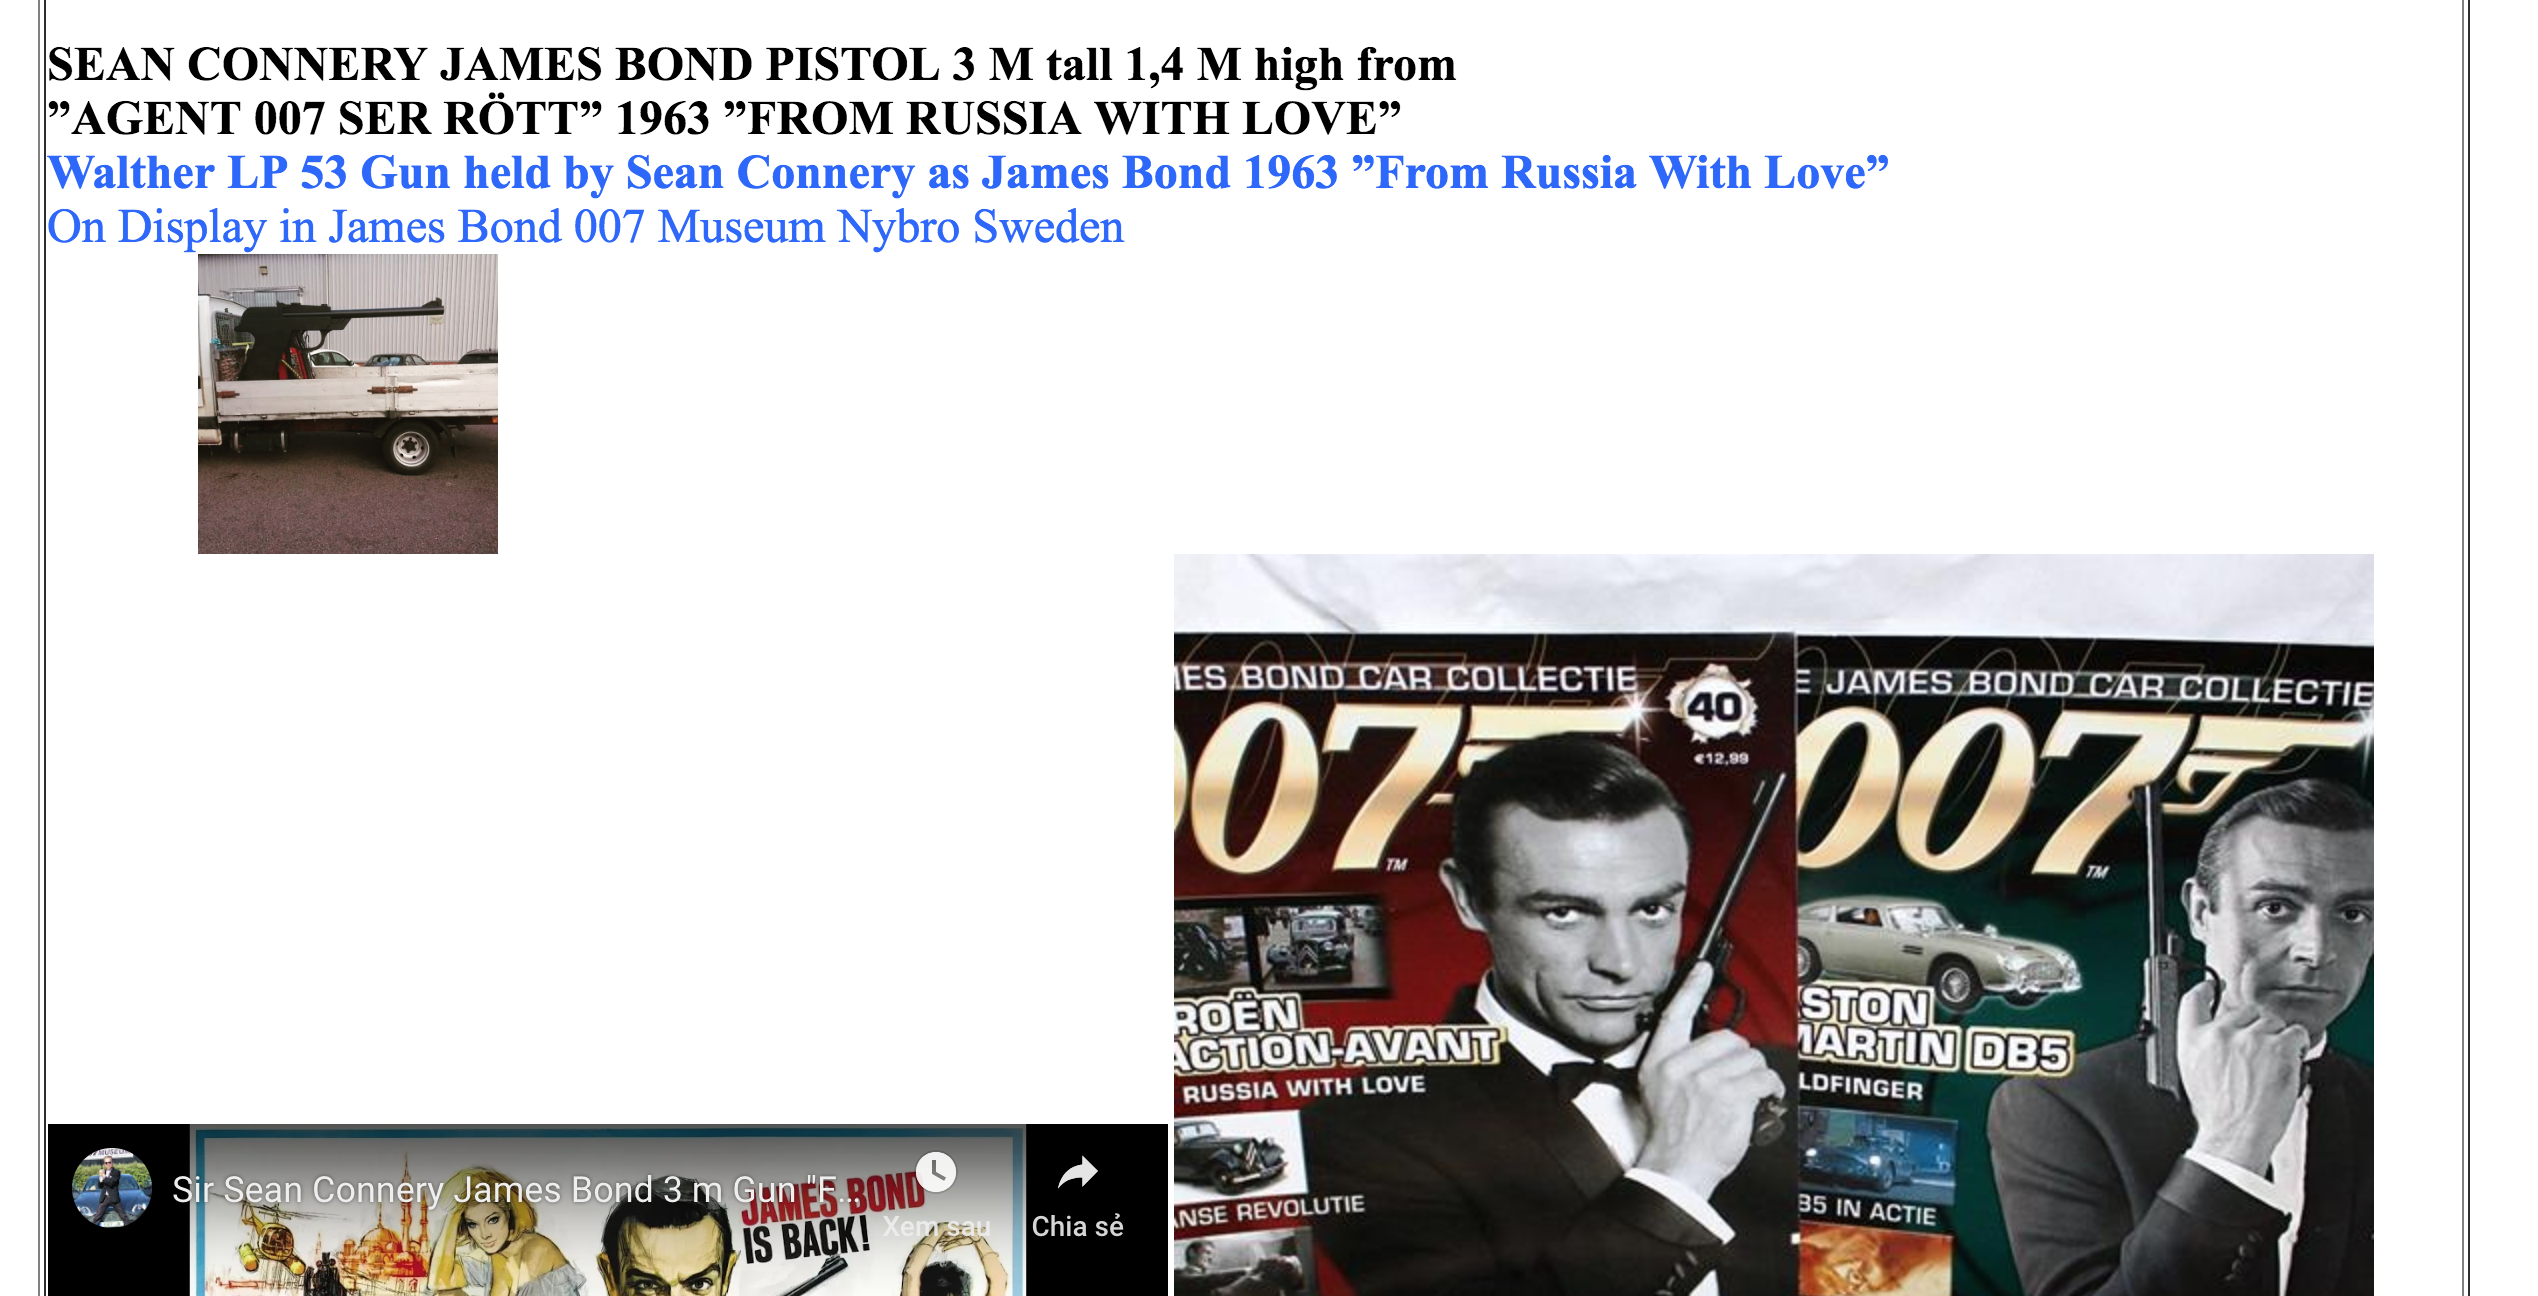 007 Museum's poor website design